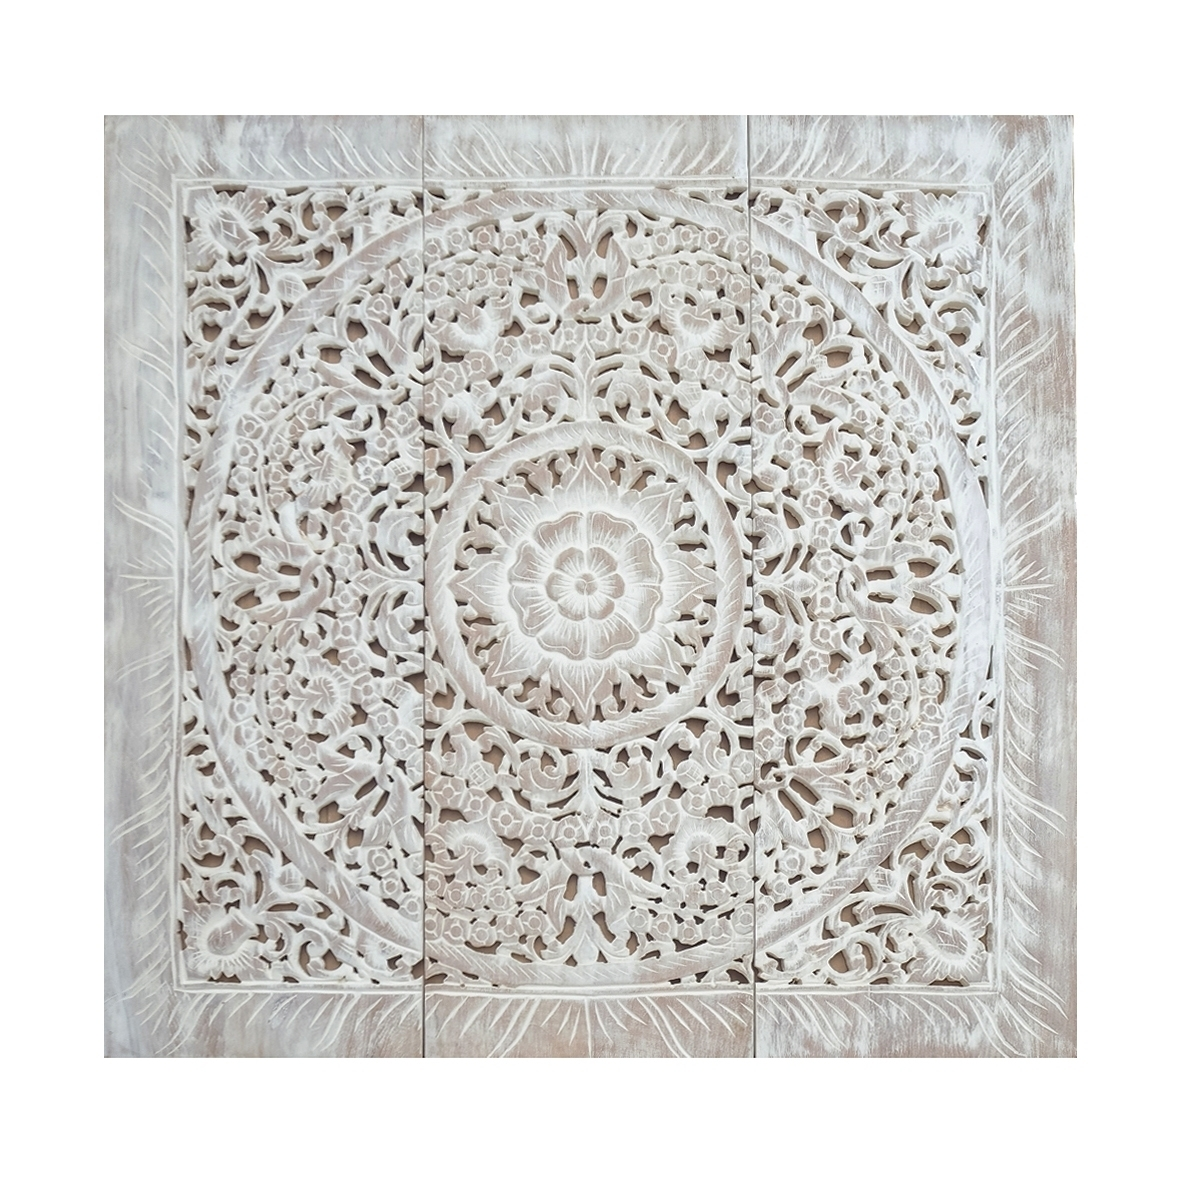 Wall Art Wood Carving 15 Photos Wood Carved Wall Art Panels – Wooden For Newest Wood Carved Wall Art (Gallery 3 of 20)